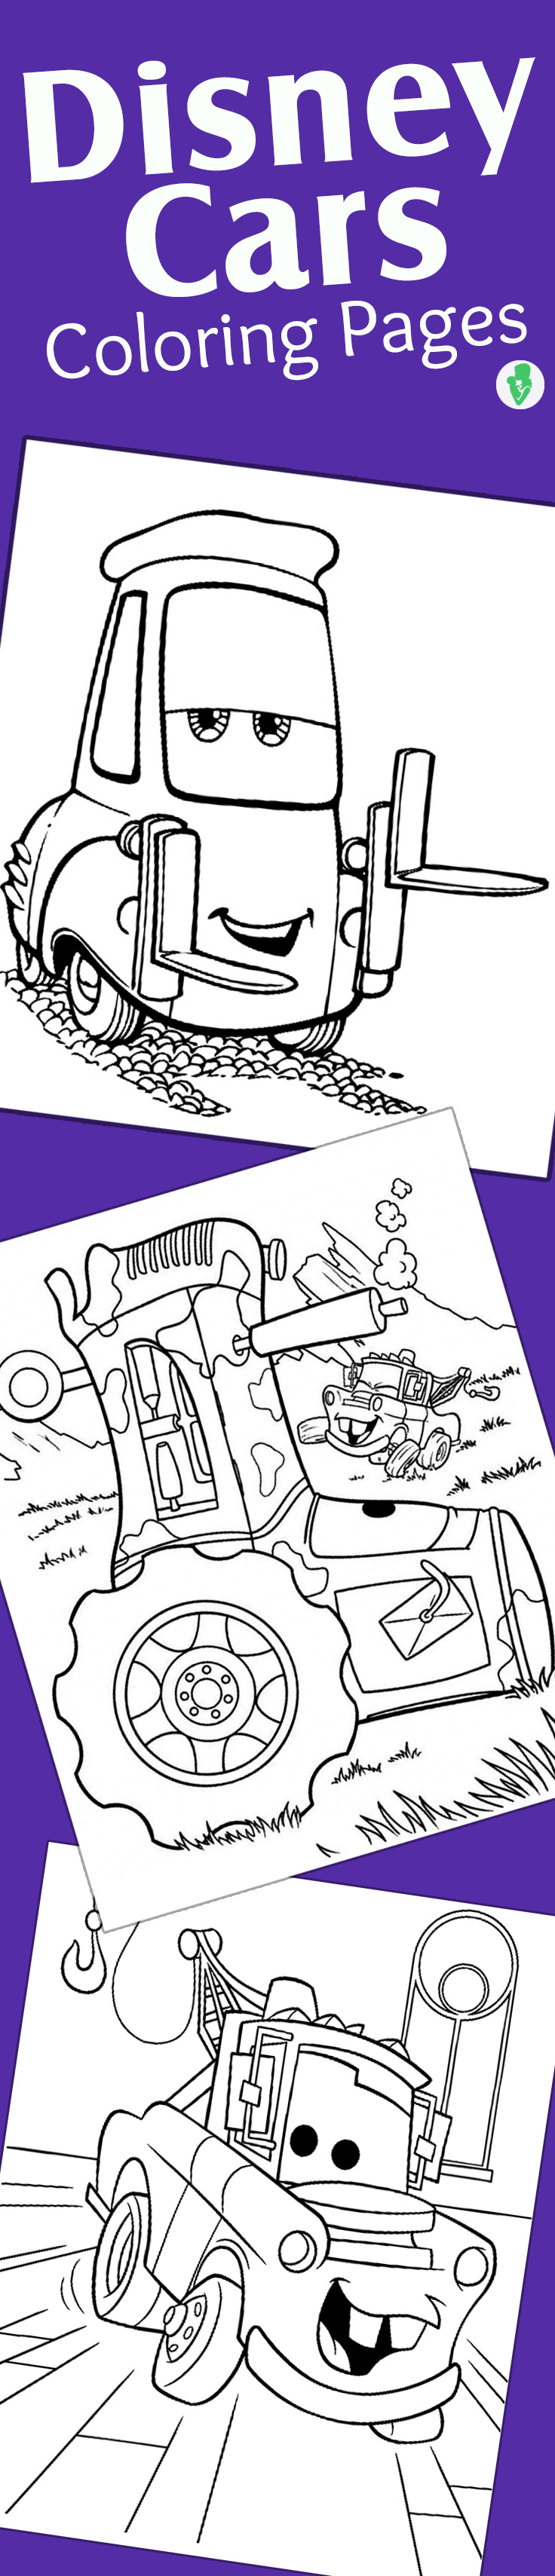 Colouring in pages disney cars - Colouring In Pages Disney Cars 59